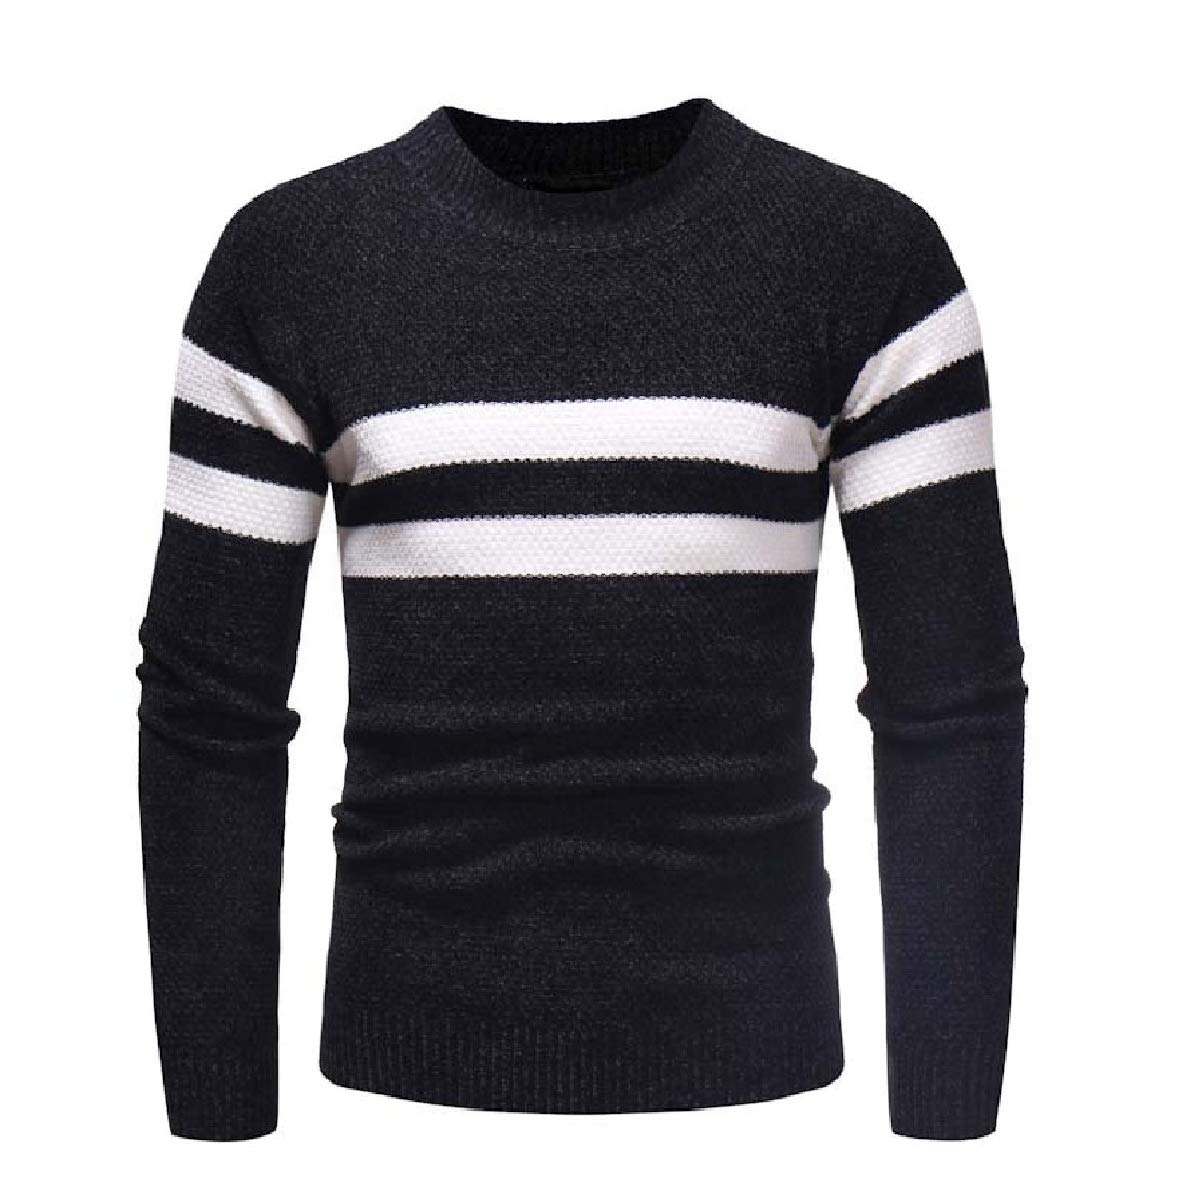 VividYouMen Long-Sleeve Pullover Knit Comfy Relaxed-Fit O-Neck Jersey Sweaters